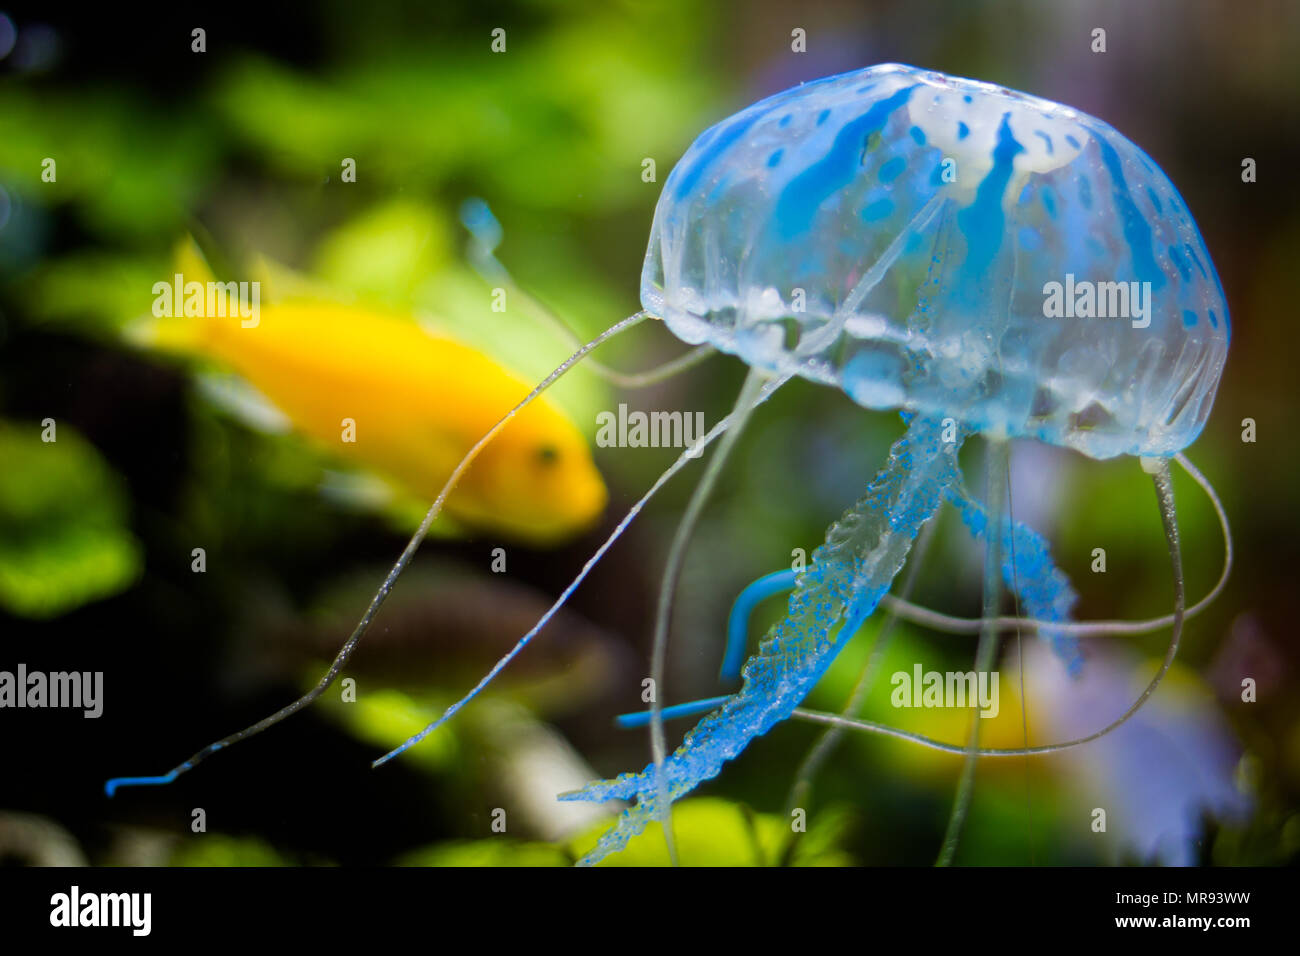 Blue and transparent jelly fish with yellow fish on the background - Stock Image